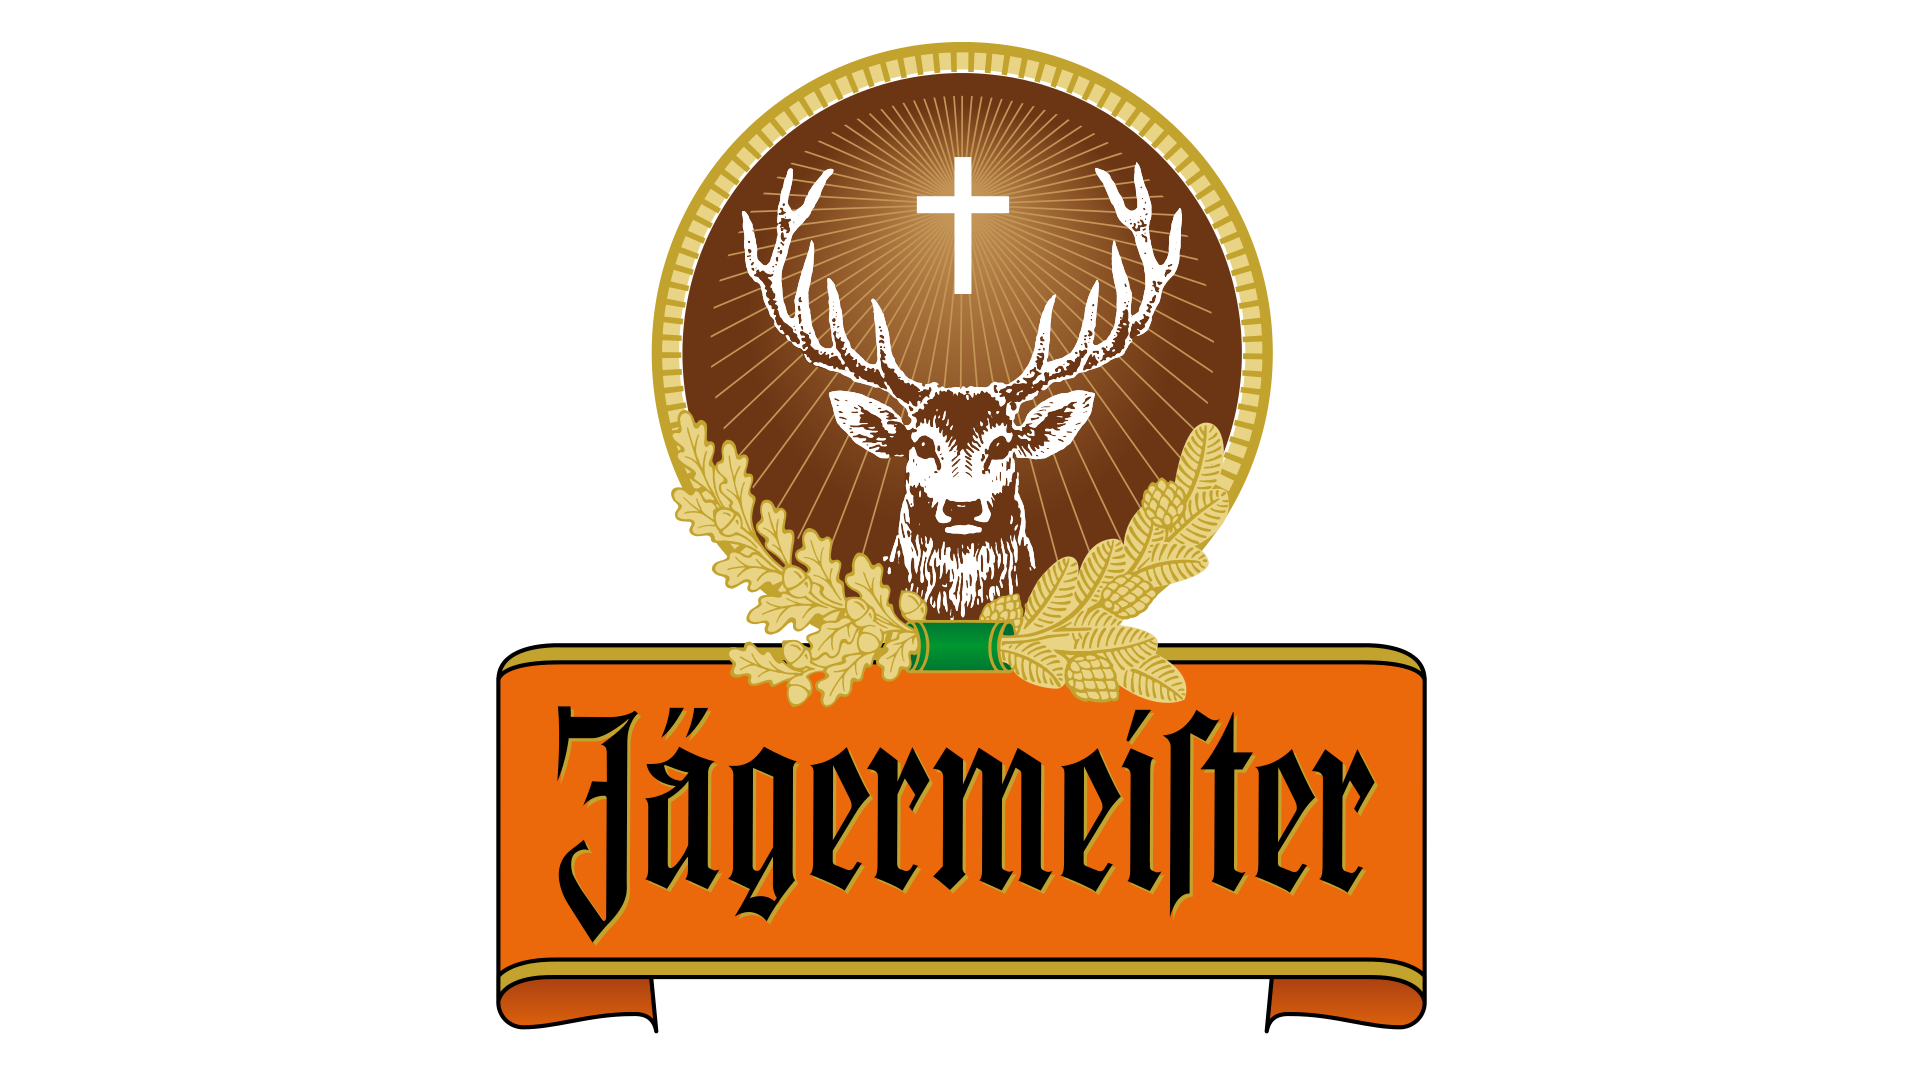 Jagermeister Logo Jagermeister Symbol Meaning History And Evolution